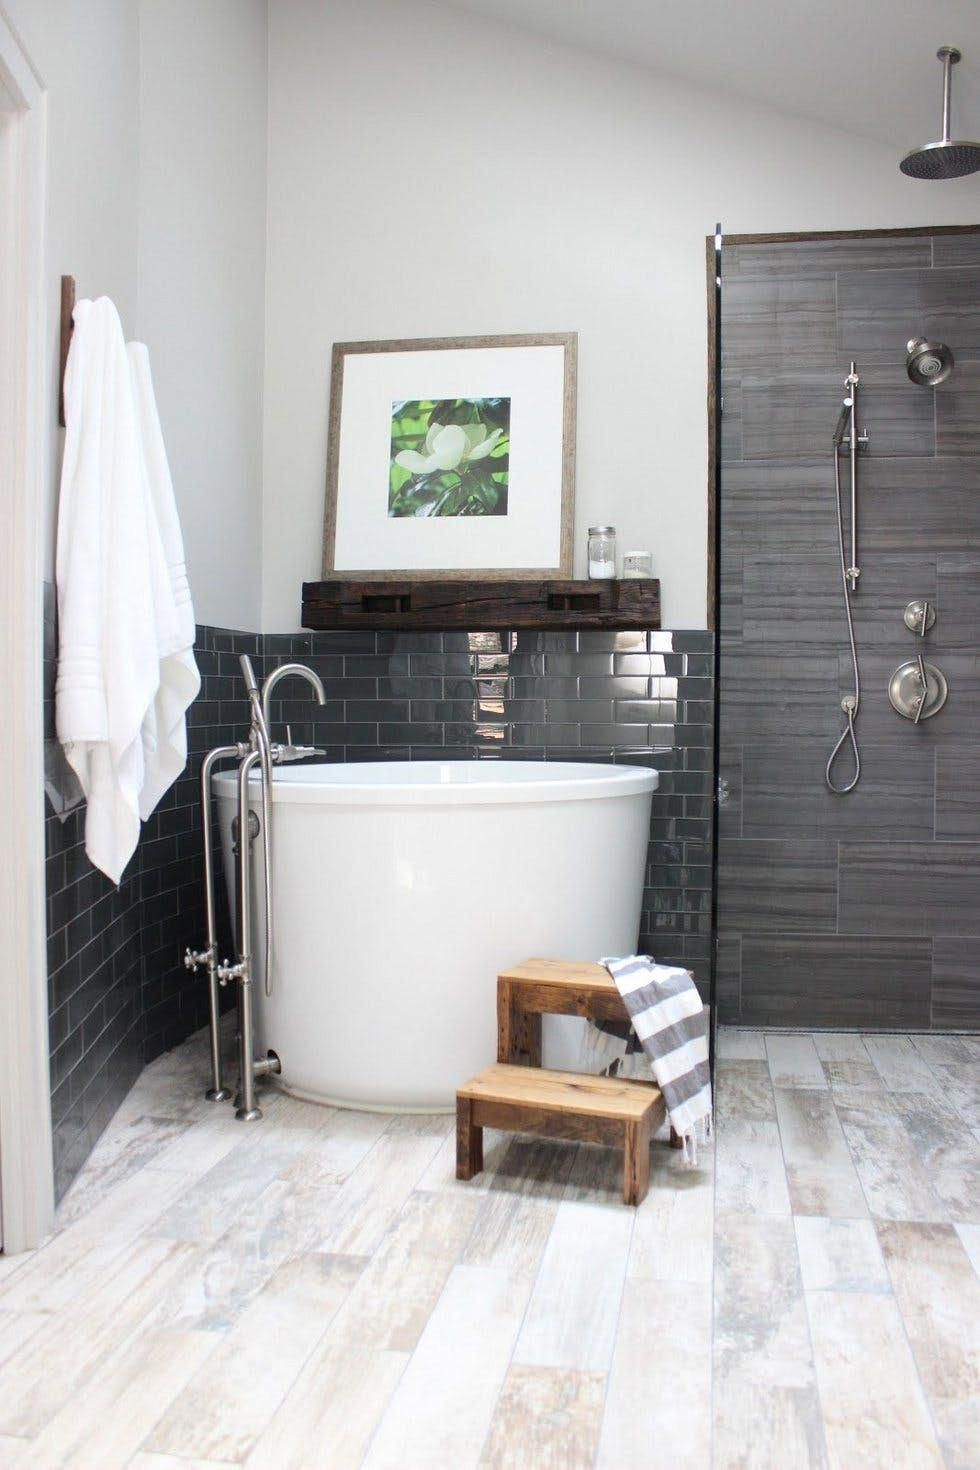 Before and after: the best bathroom makeovers